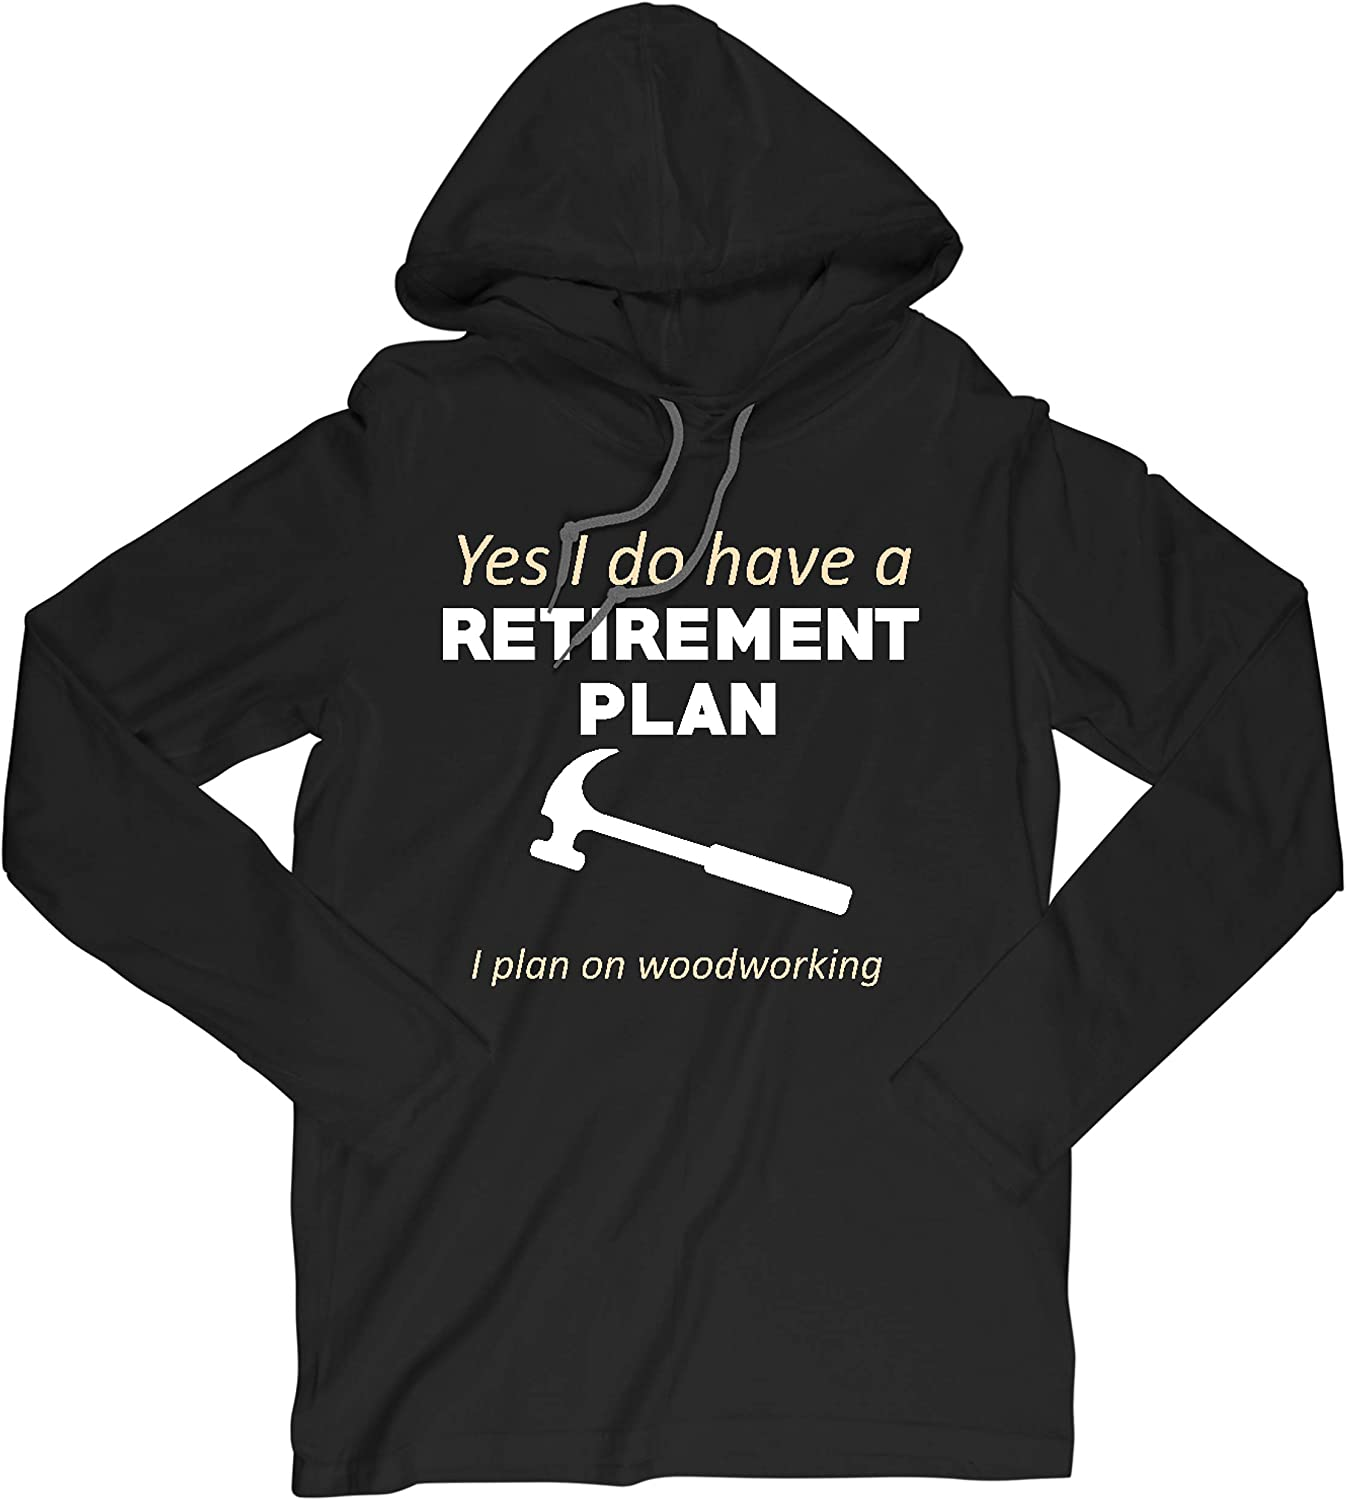 Always Awesome Apparel Black Long Hooded T-Shirt Retireme 2021new shipping free specialty shop Sleeve